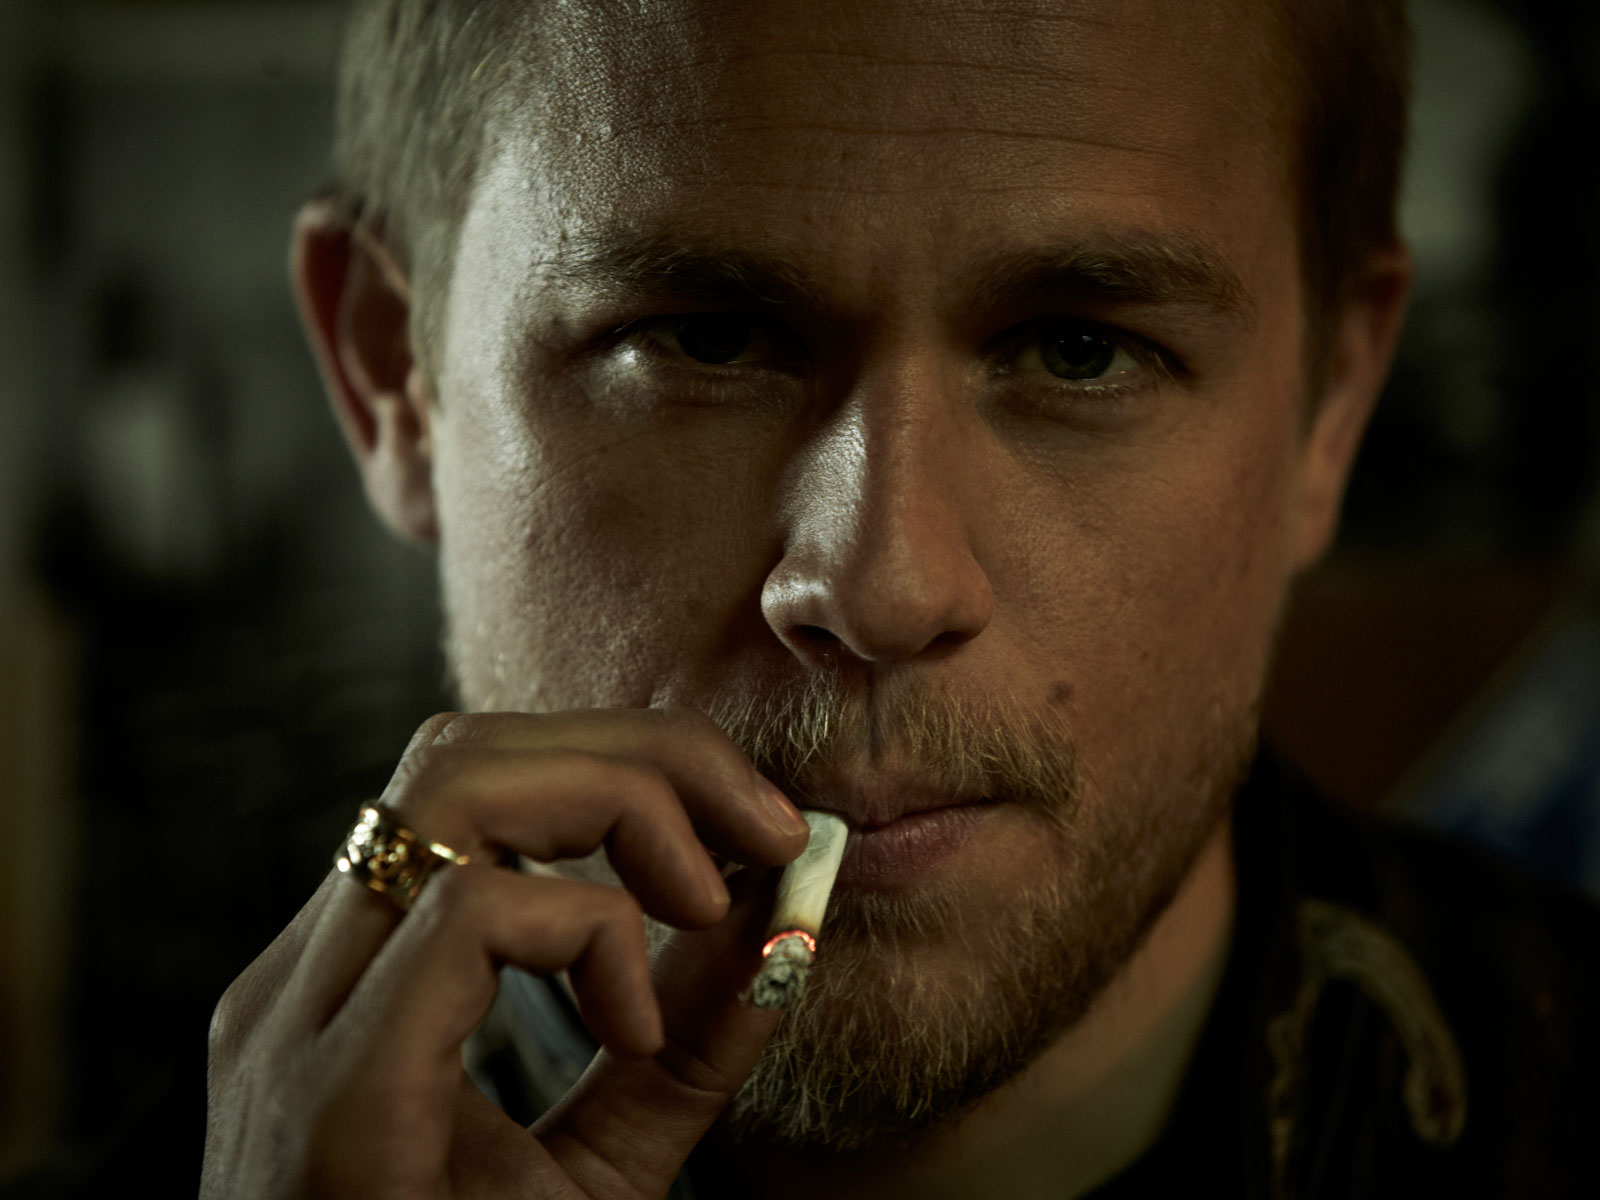 Hd Charlie Hunnam Wallpapers: Charlie Hunnam HD Wallpapers For Desktop Download